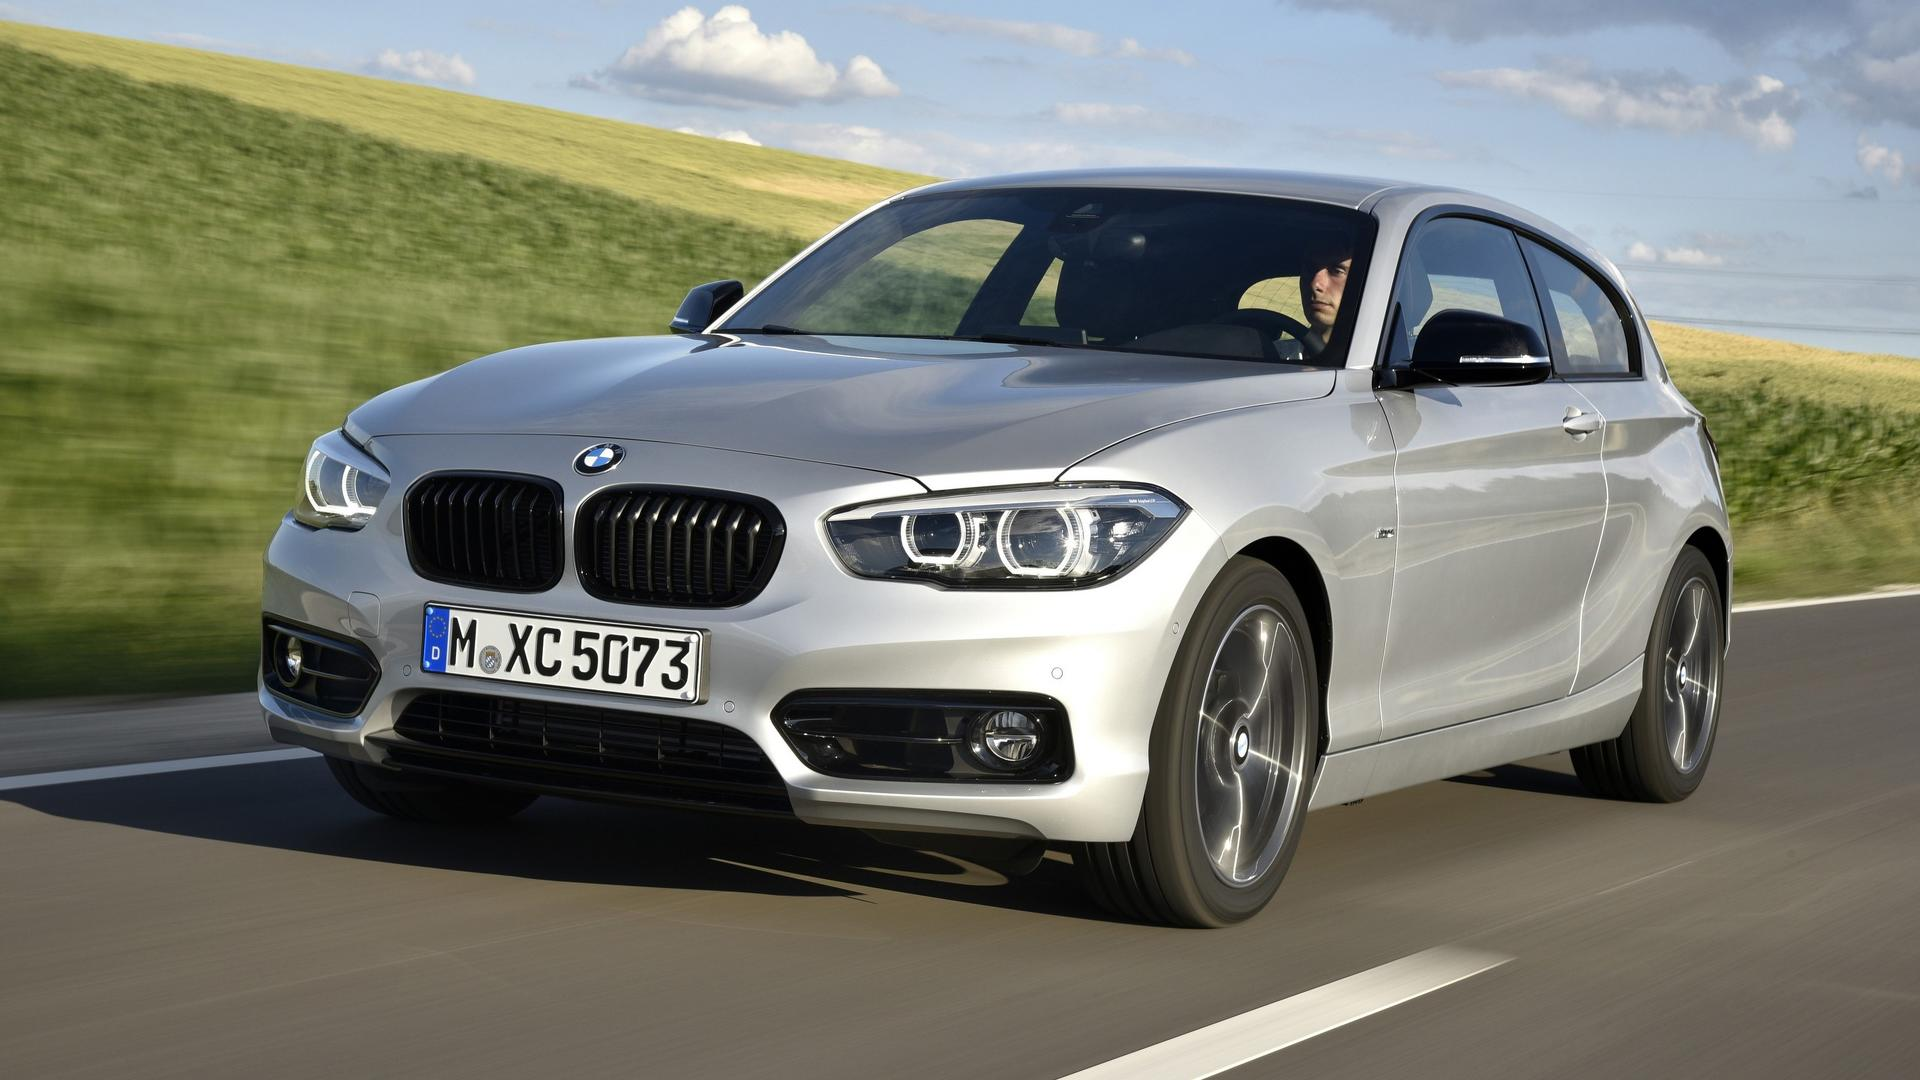 Refreshed Bmw 1 Series Goes Dark With Special Edition Models